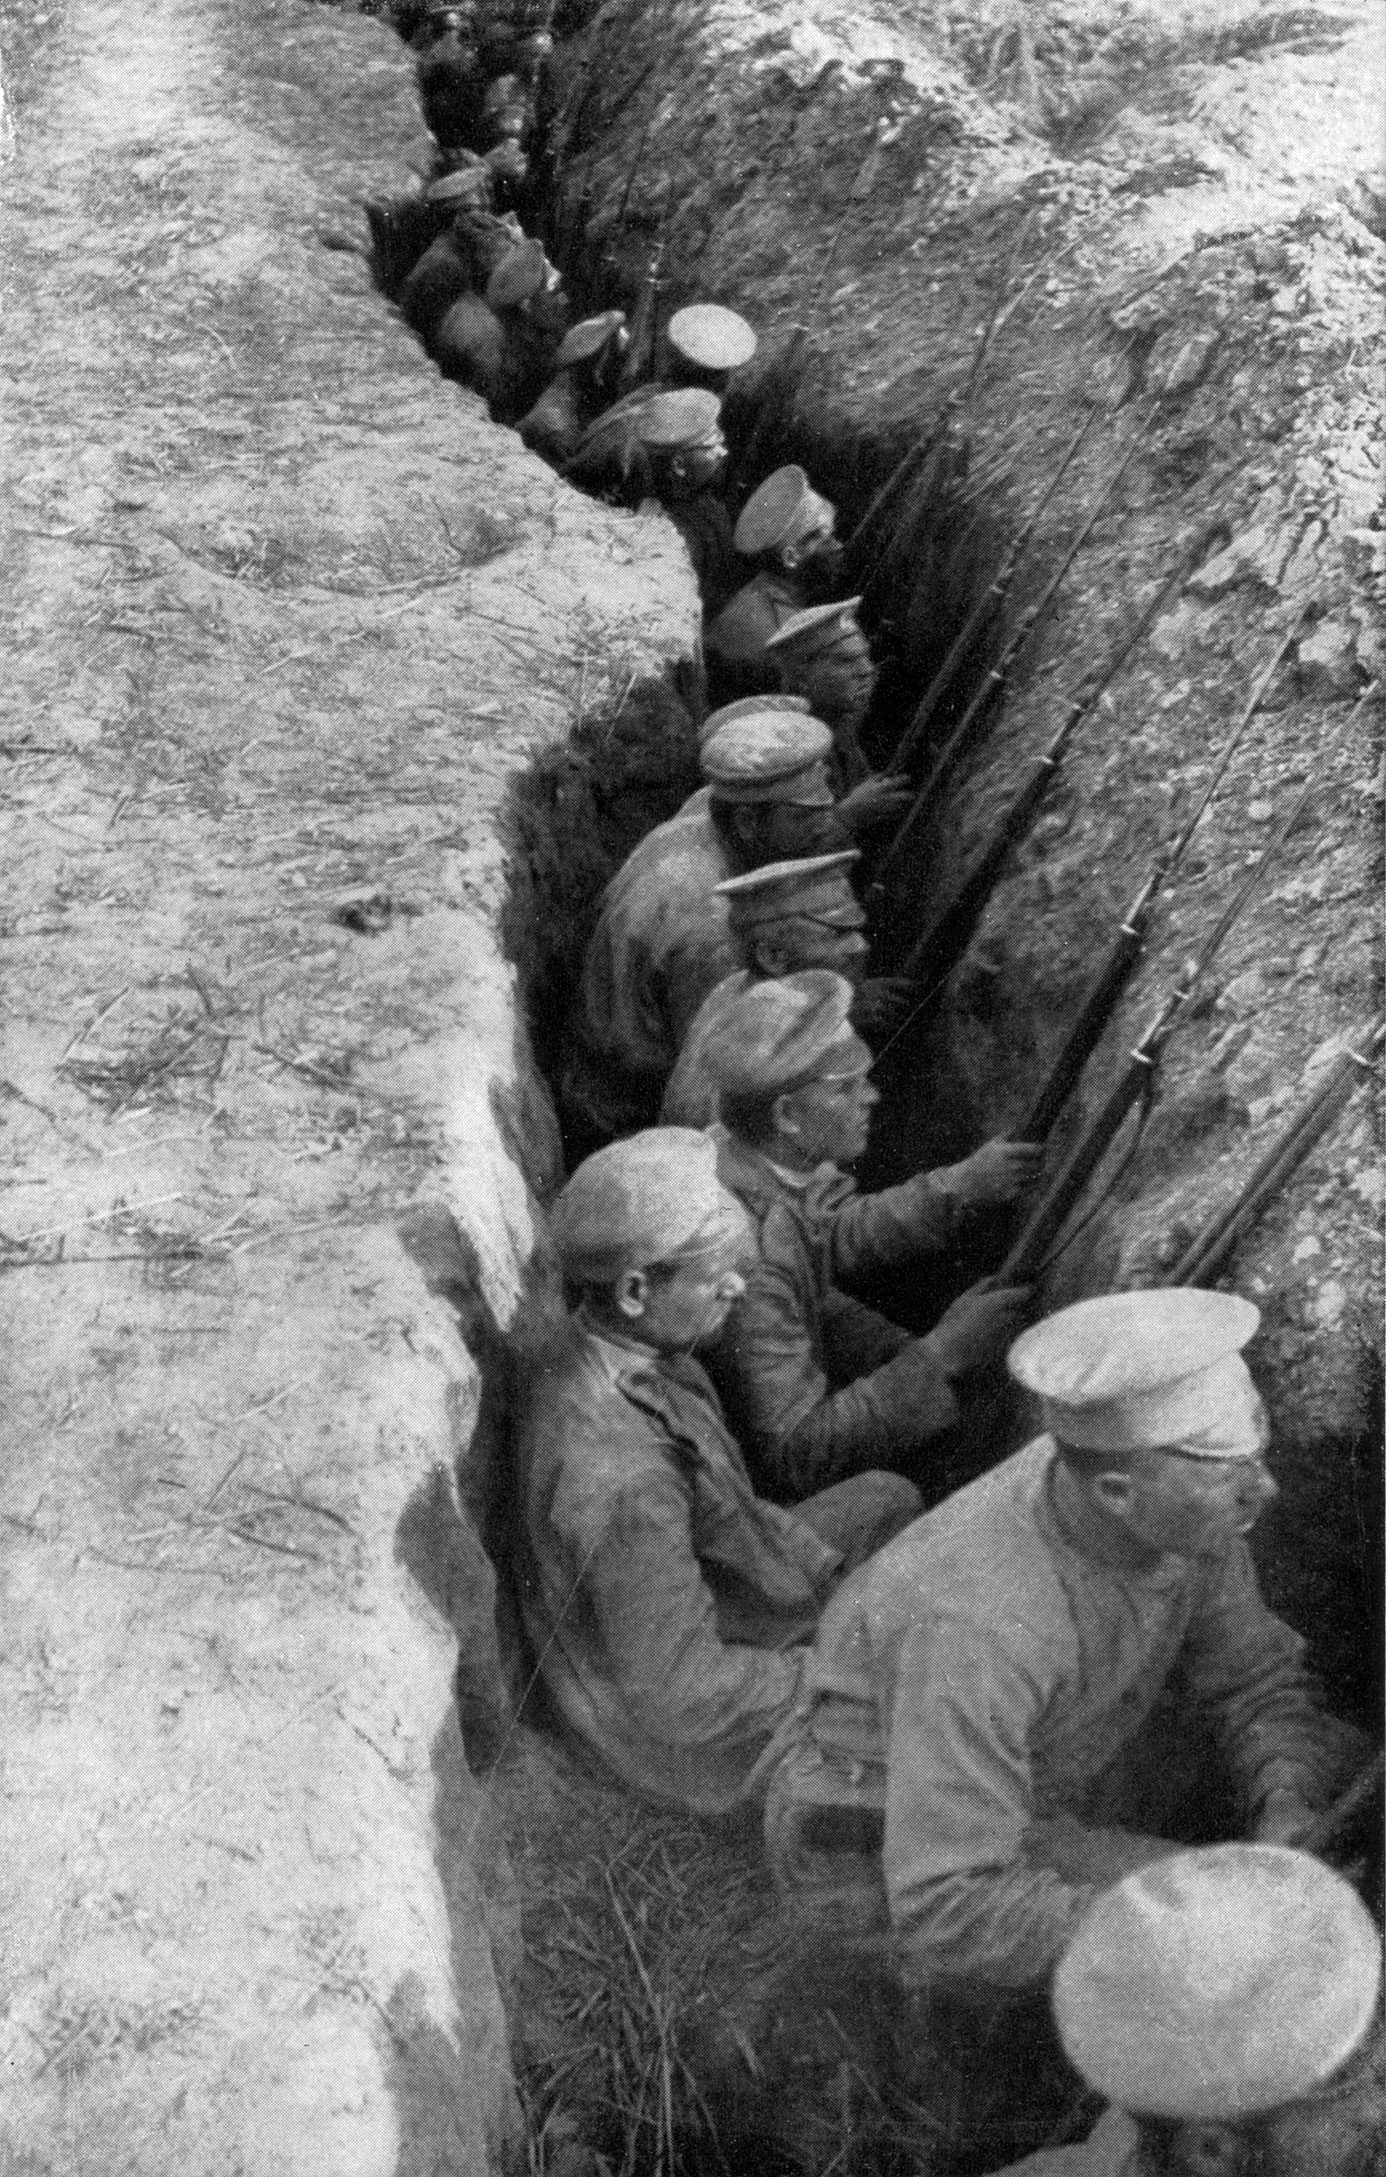 Russian troops awaiting a German attack World